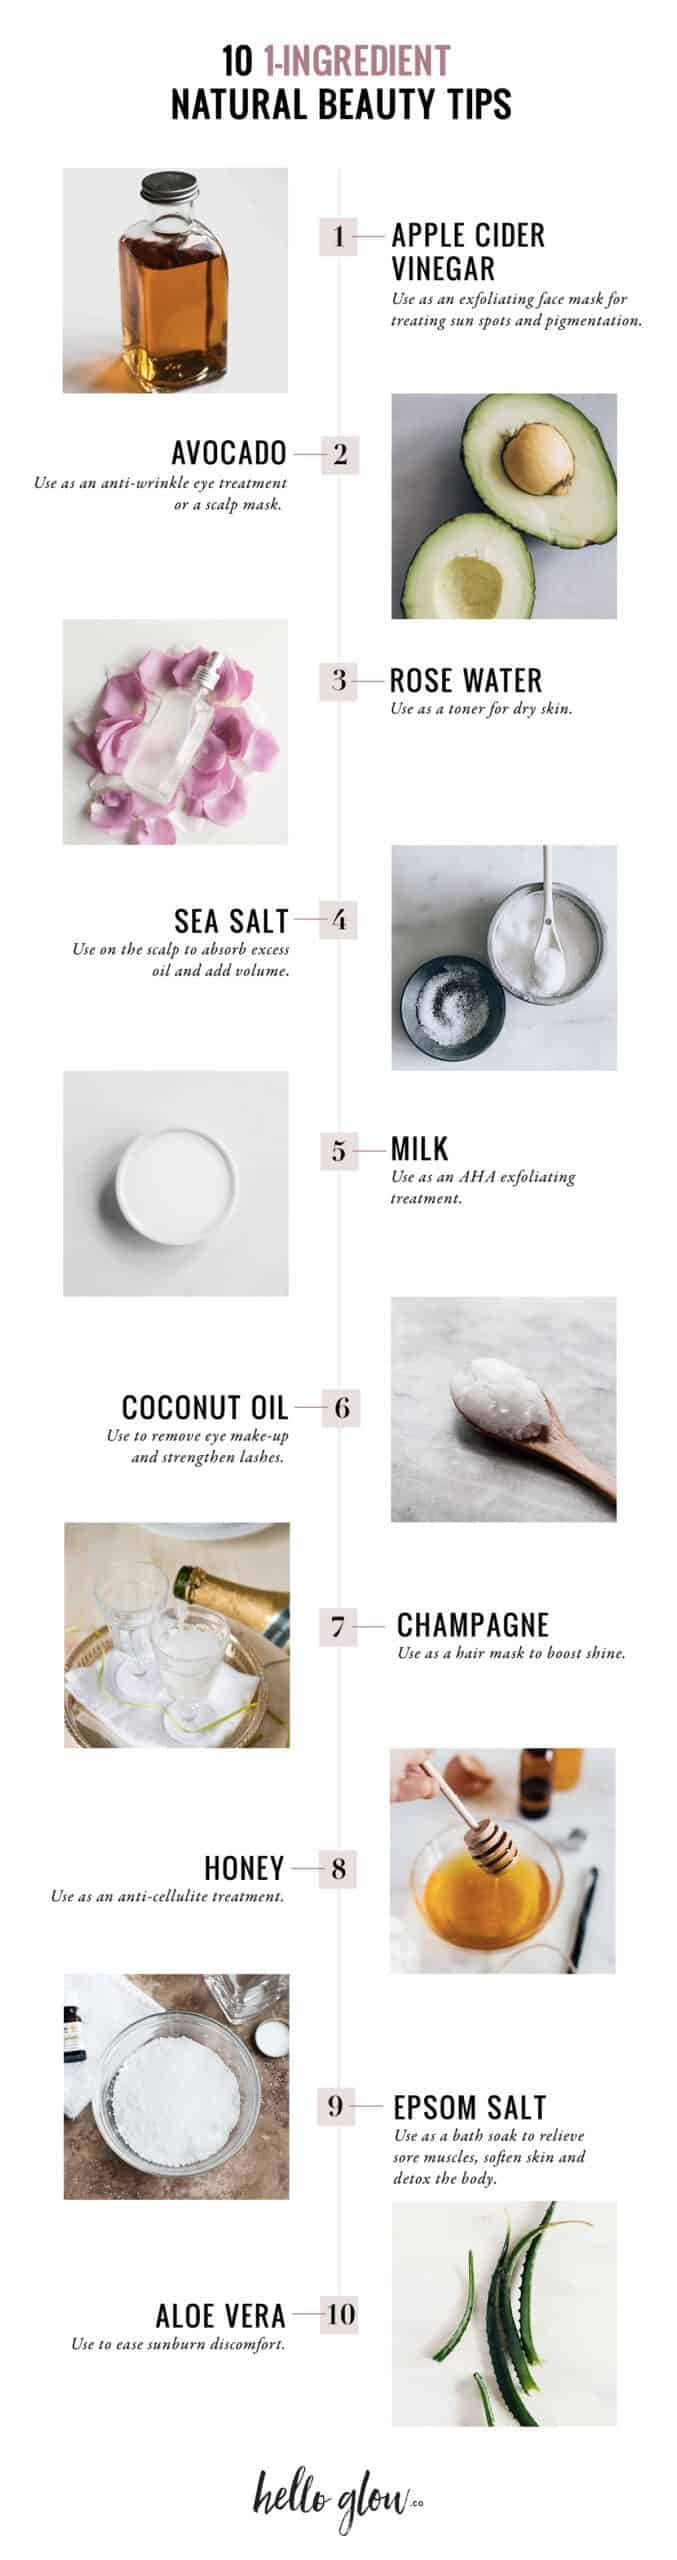 10 1-Ingredient Natural Beauty Tips - HelloGlow.co